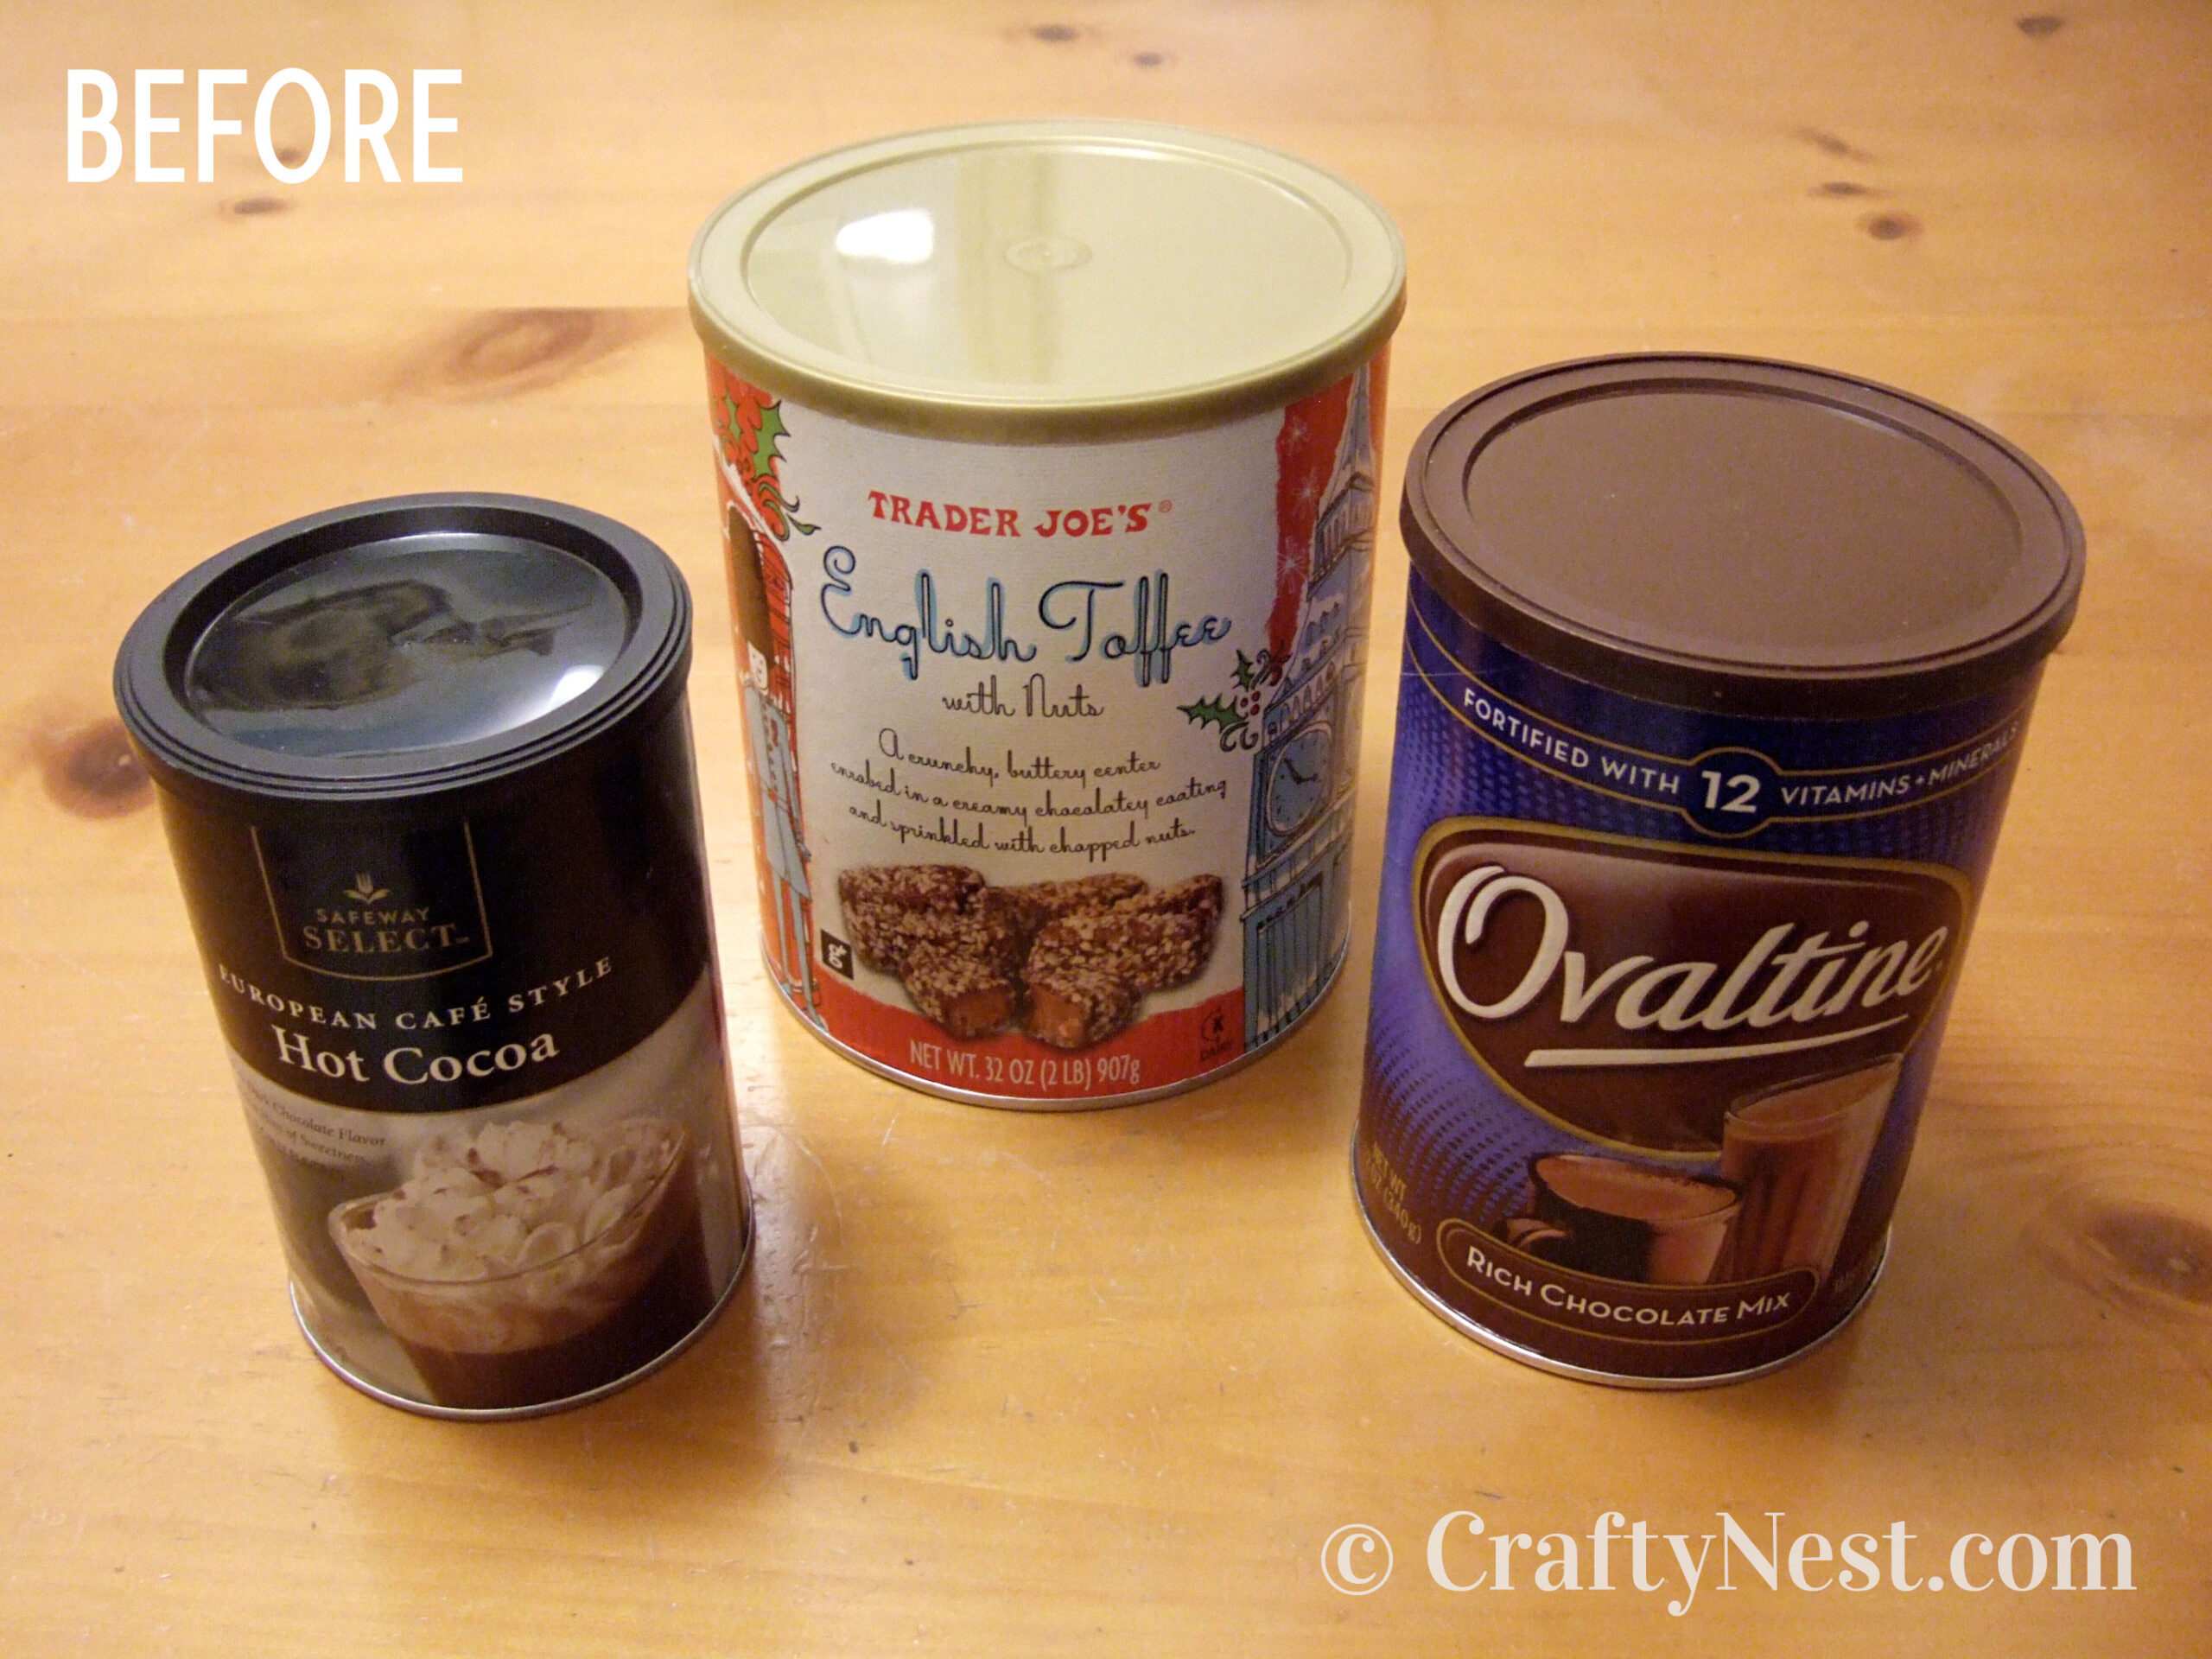 Food canisters, photo